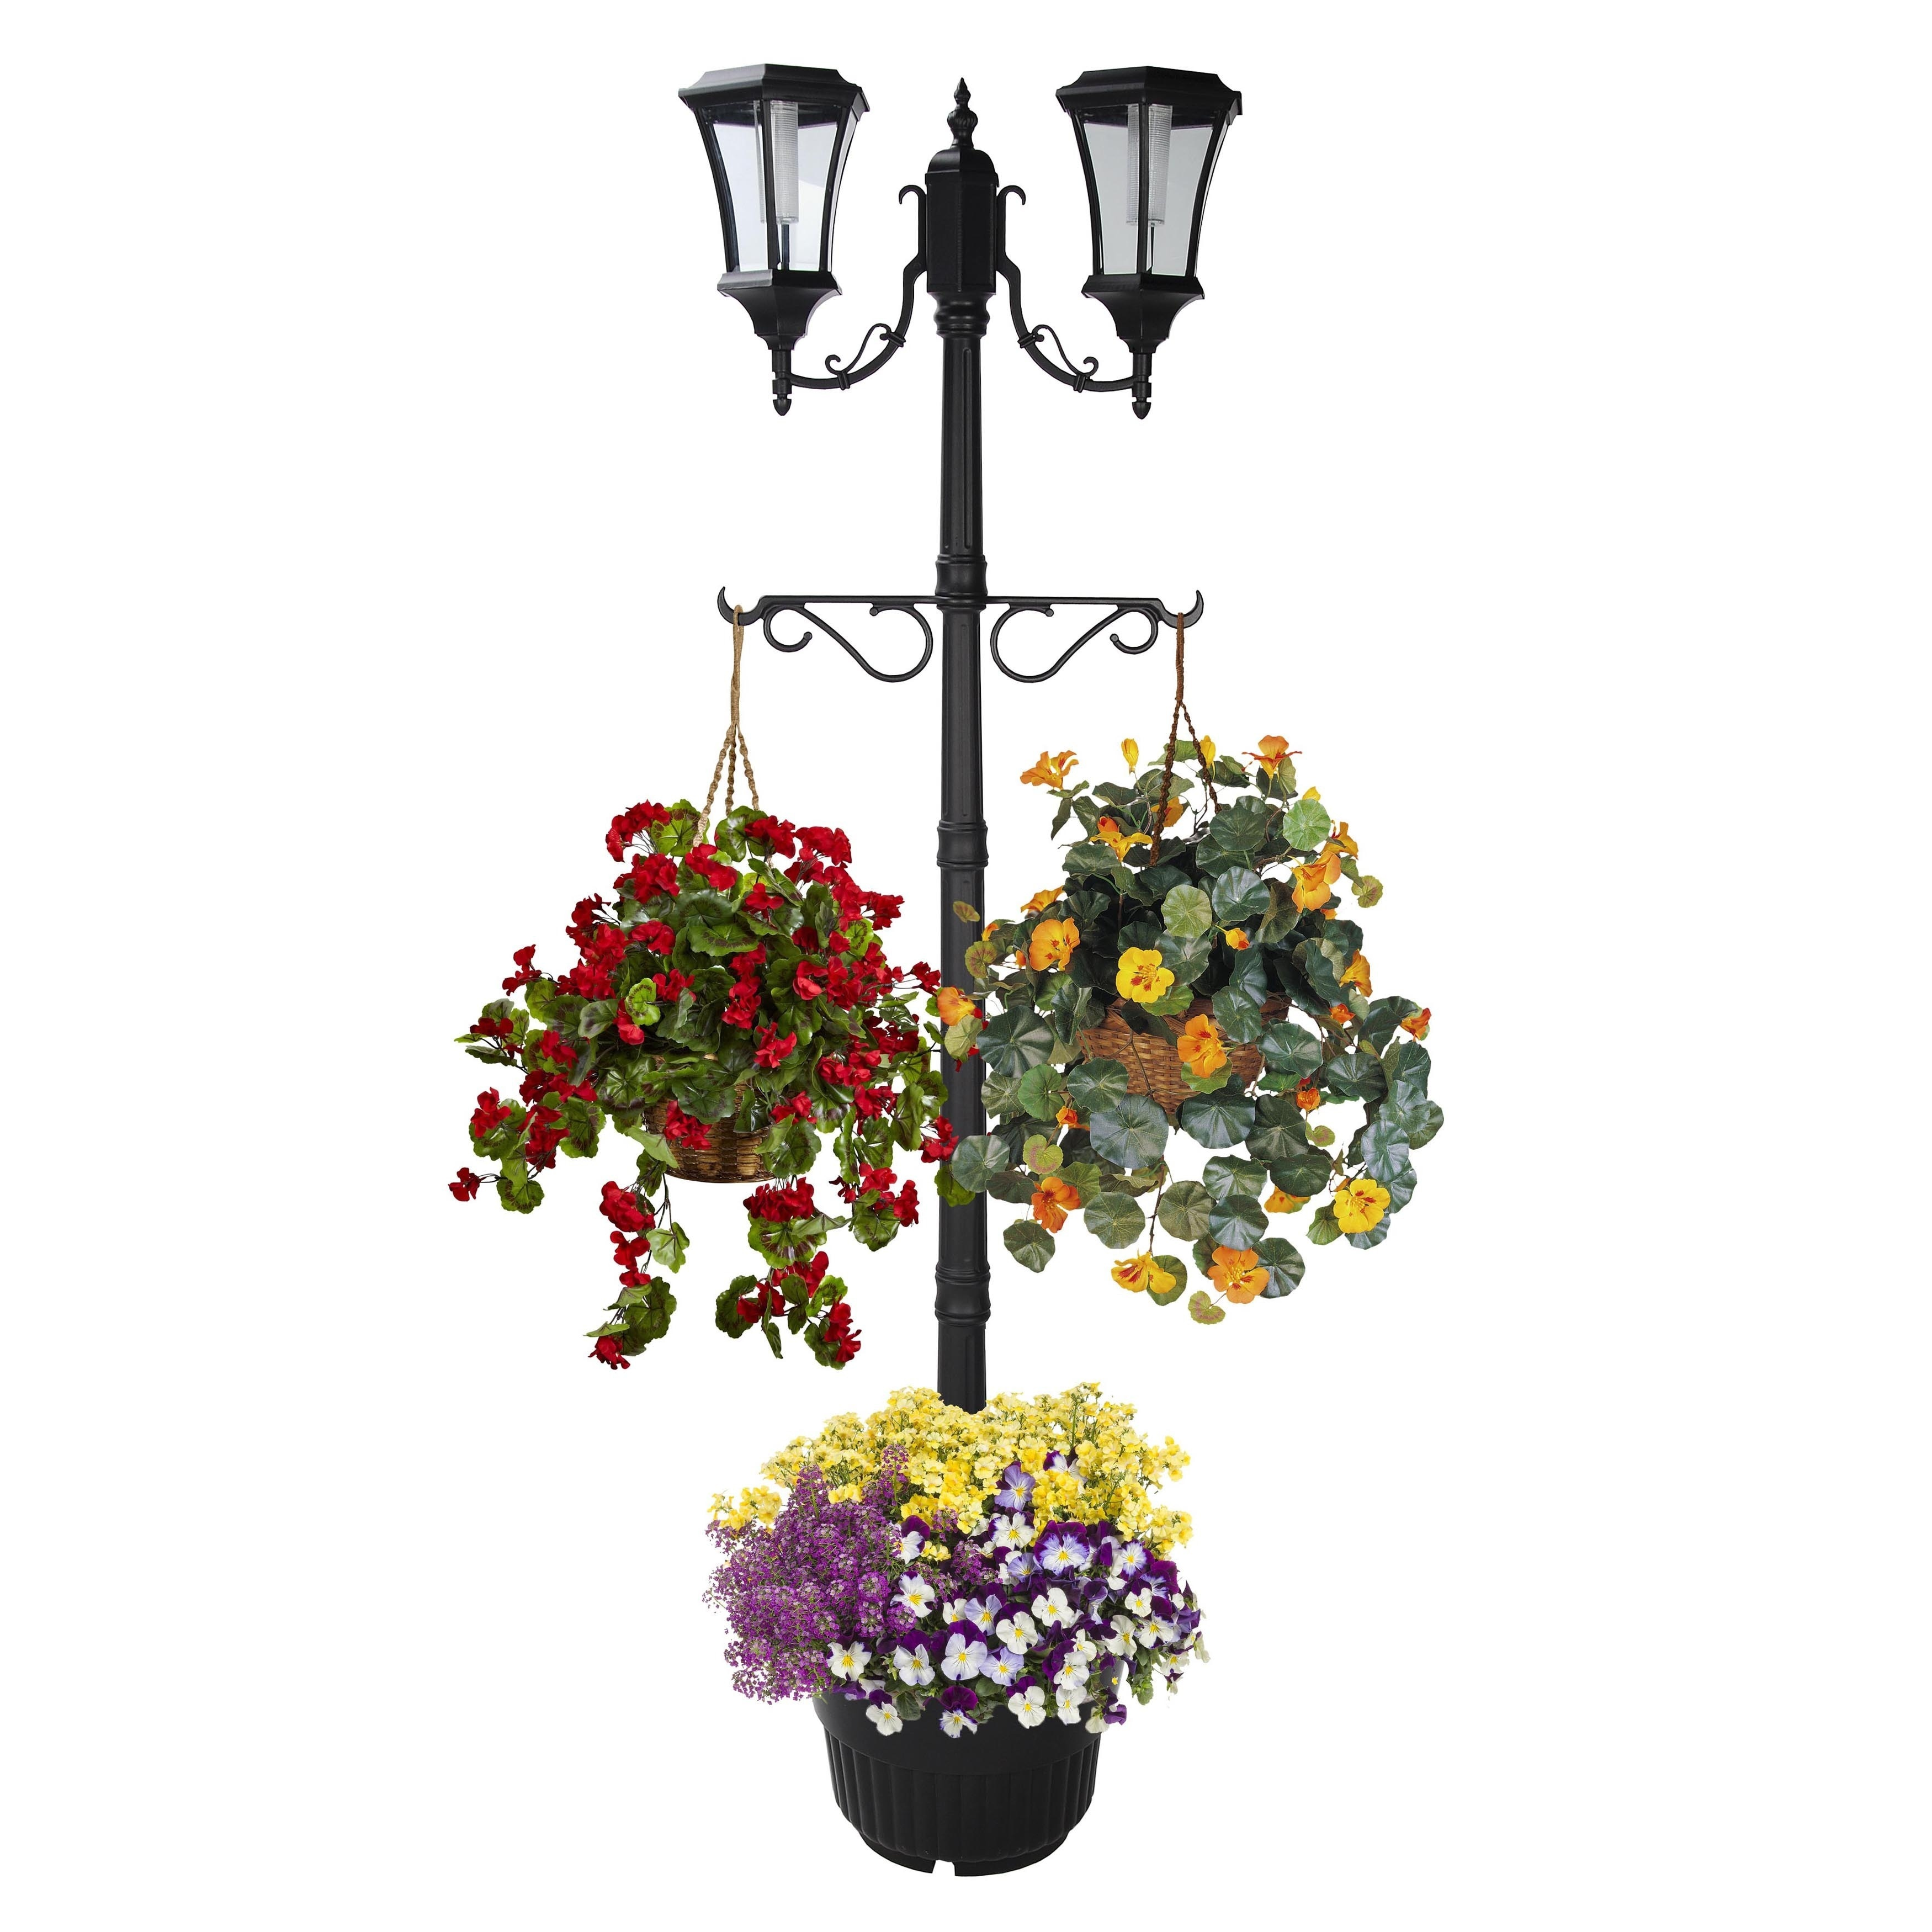 lighting lamp gama planter gamasonic product light color by pathway lights dual pack with sonic solar post option gs garden